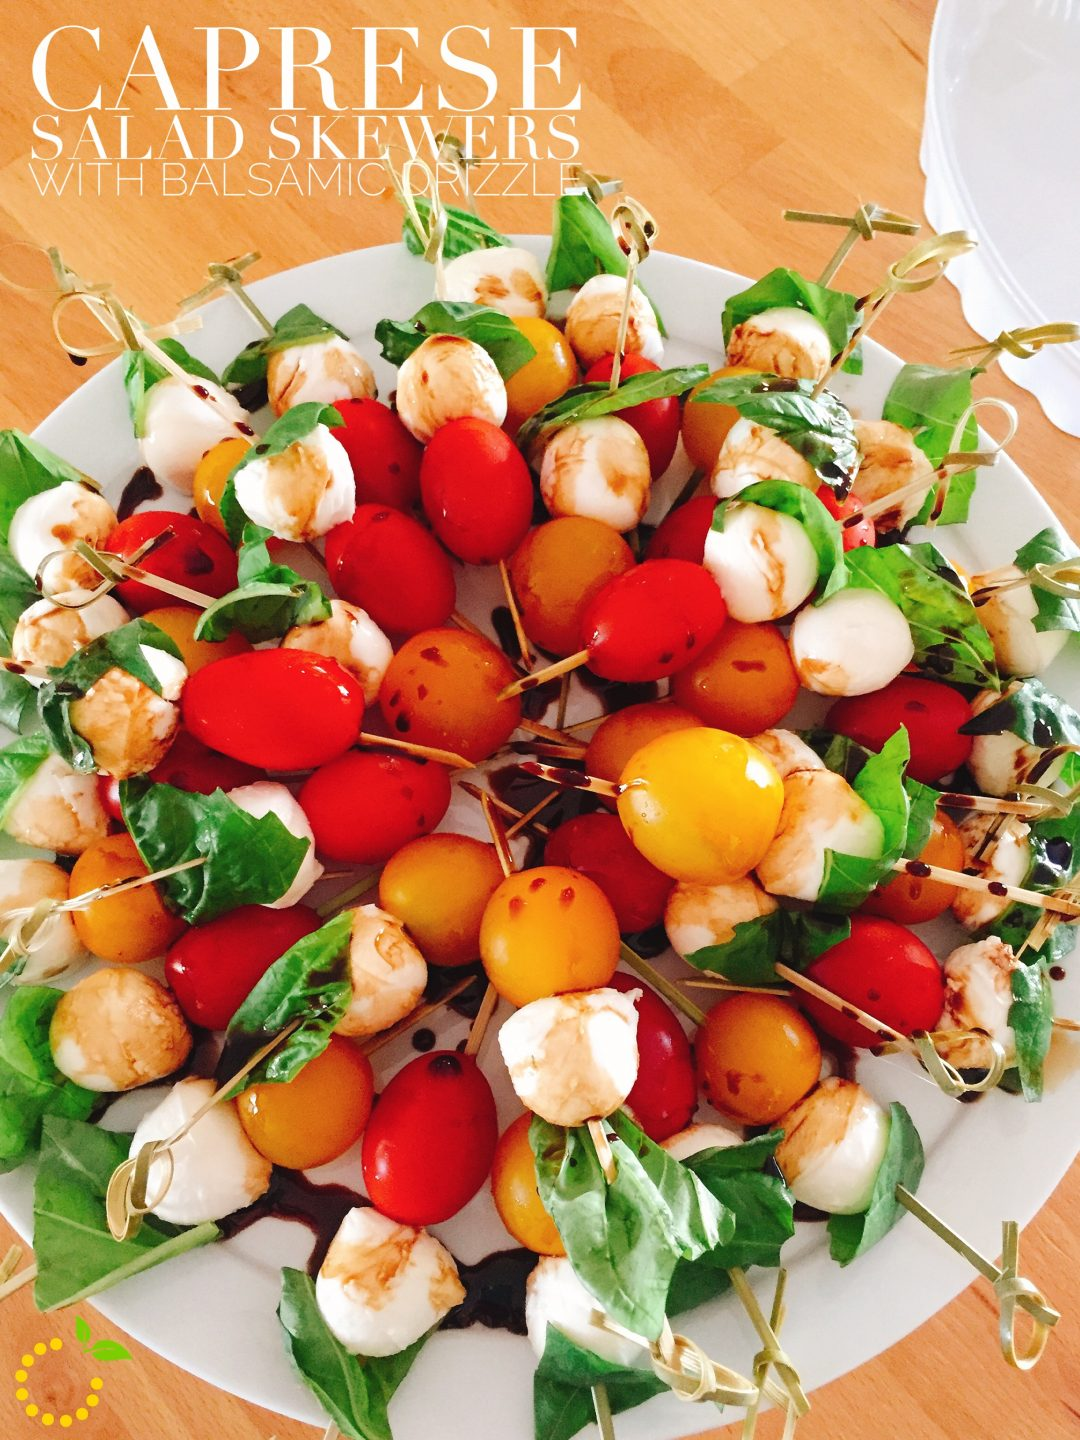 Caprese Salad Skewers with Balsamic Drizzle